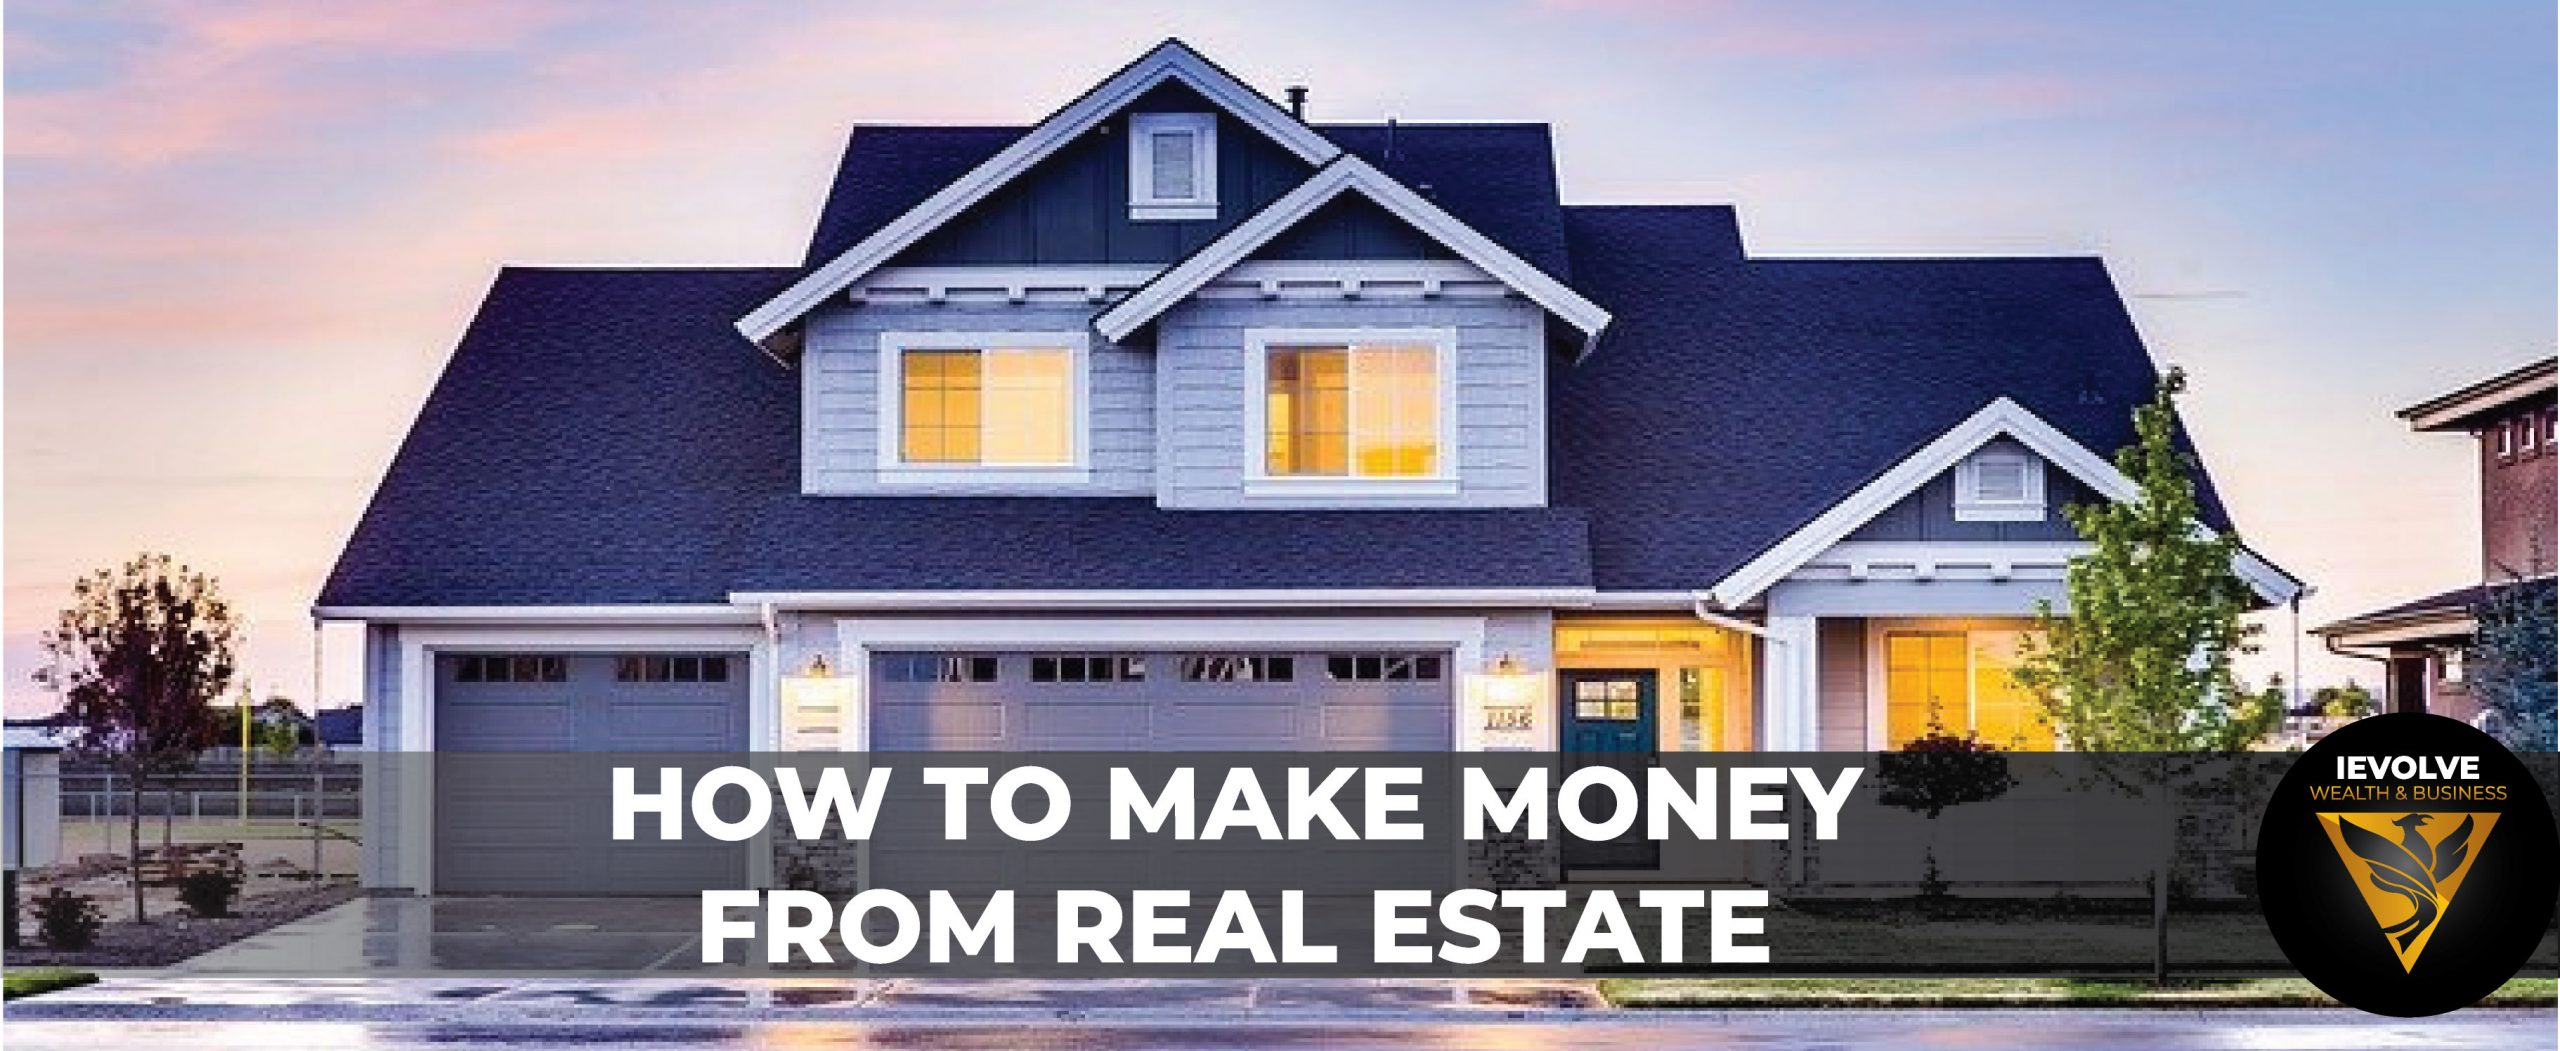 How To Make Money From Real Estate